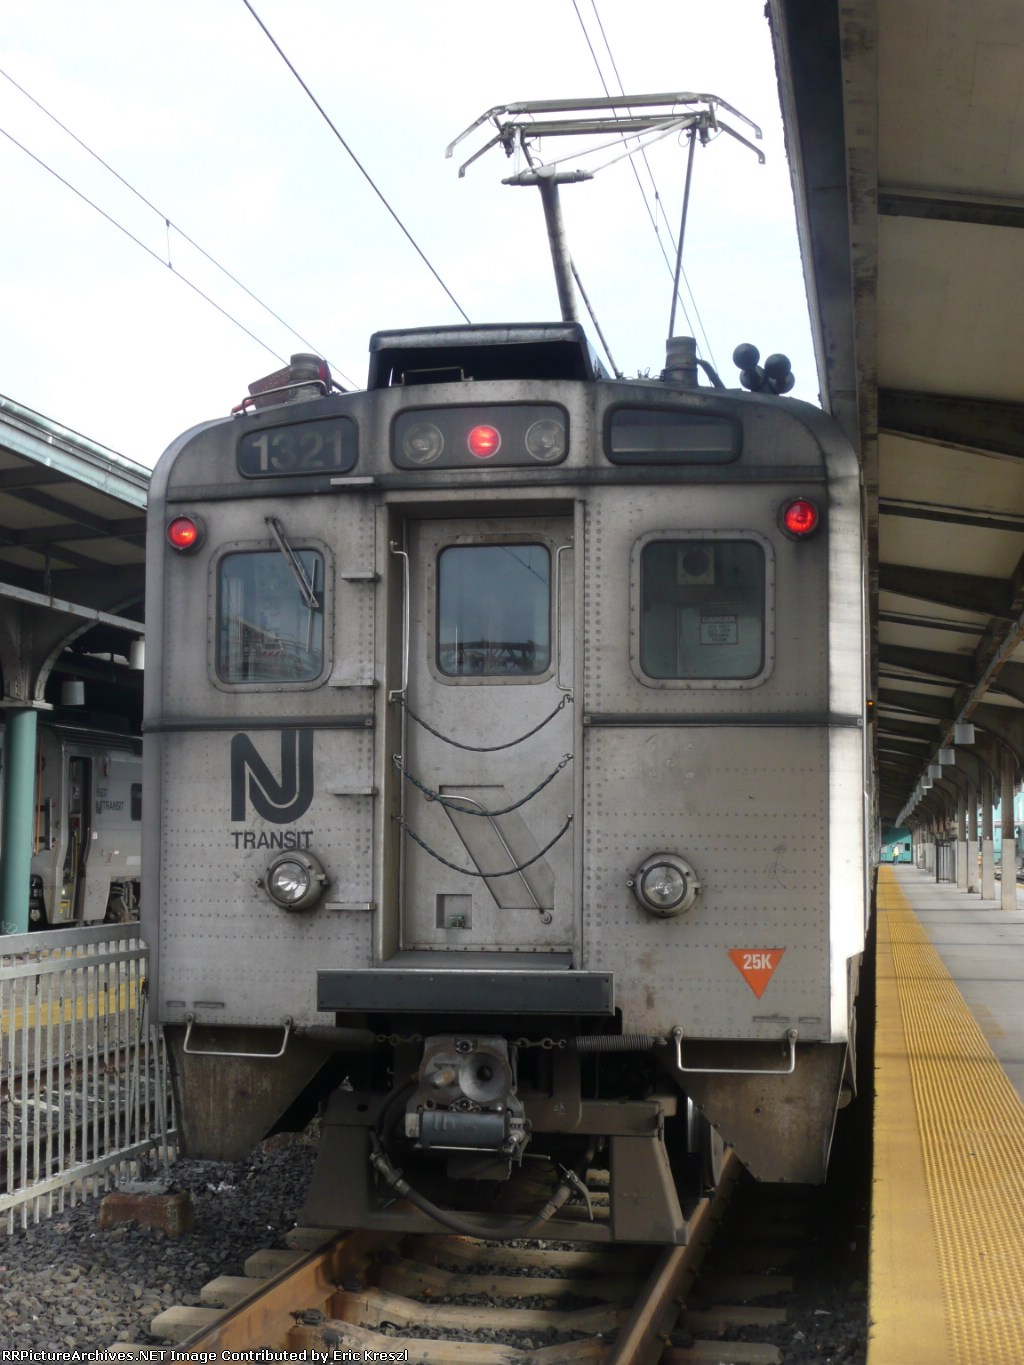 NJT 1321 Head On Photo